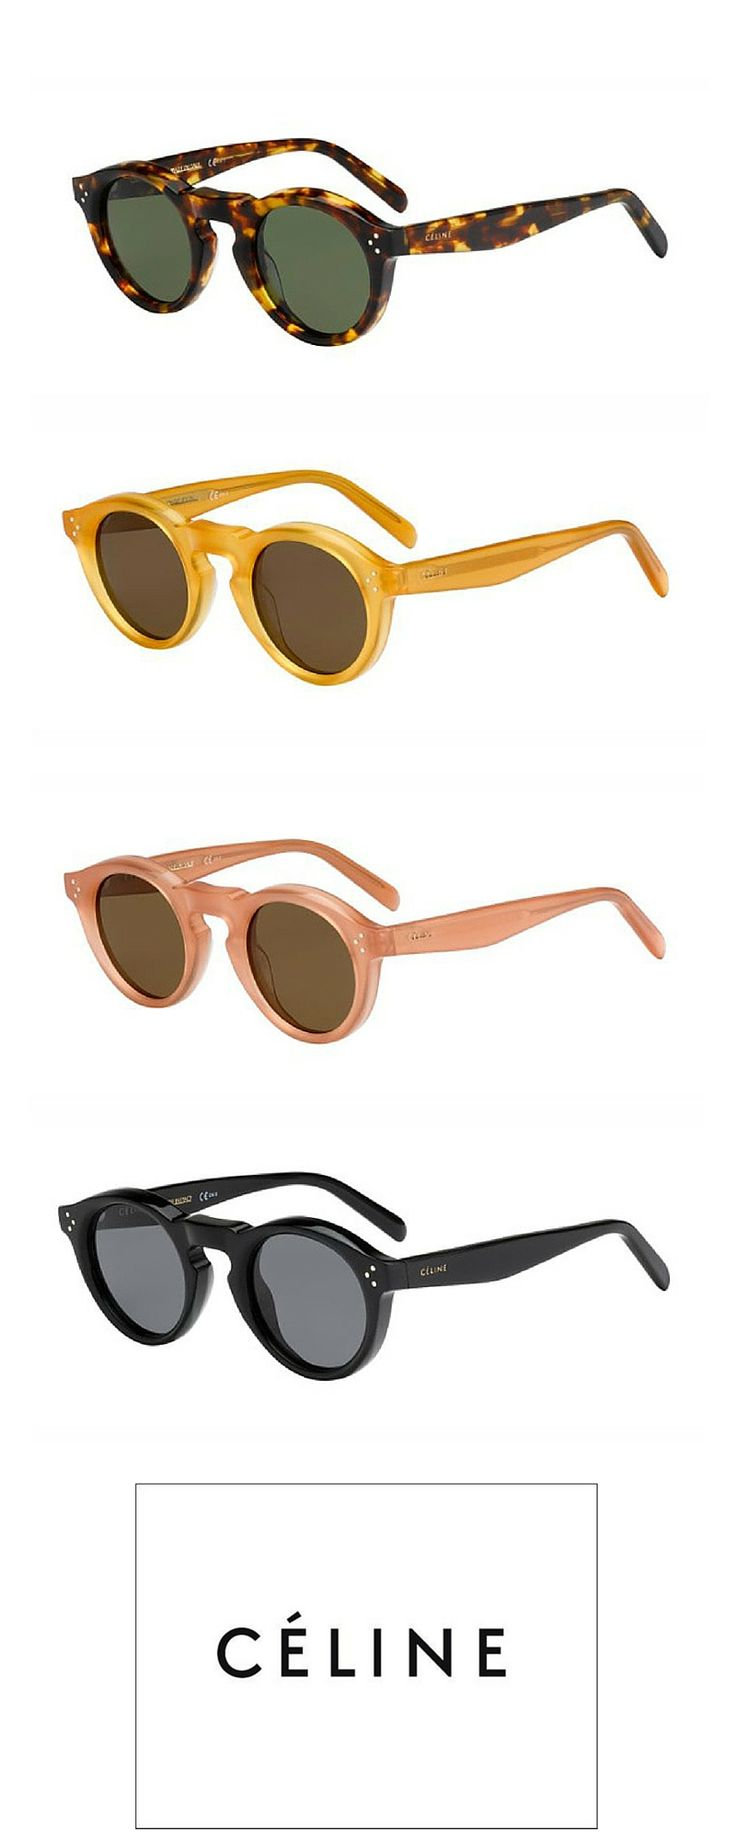 Round and stylish choose the best colour for you! Celine